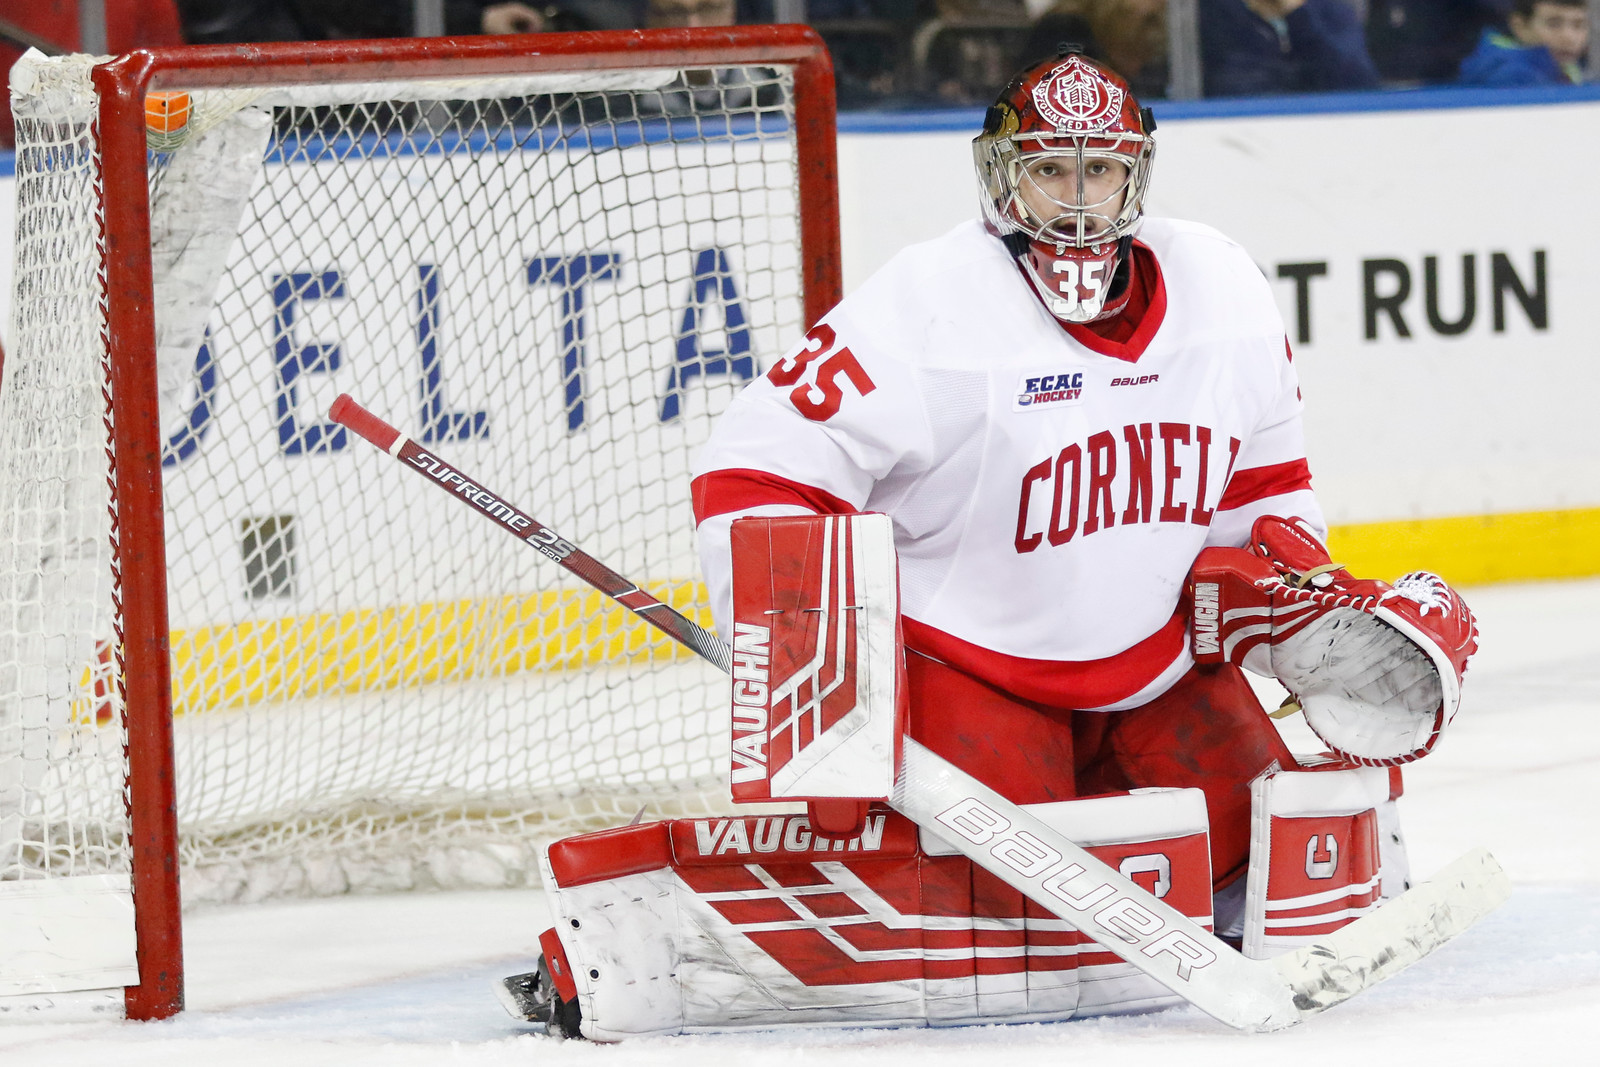 Big Red net-minder Matt Galajda stymied the Crimson attack on Friday, posting a 25-save shutout.